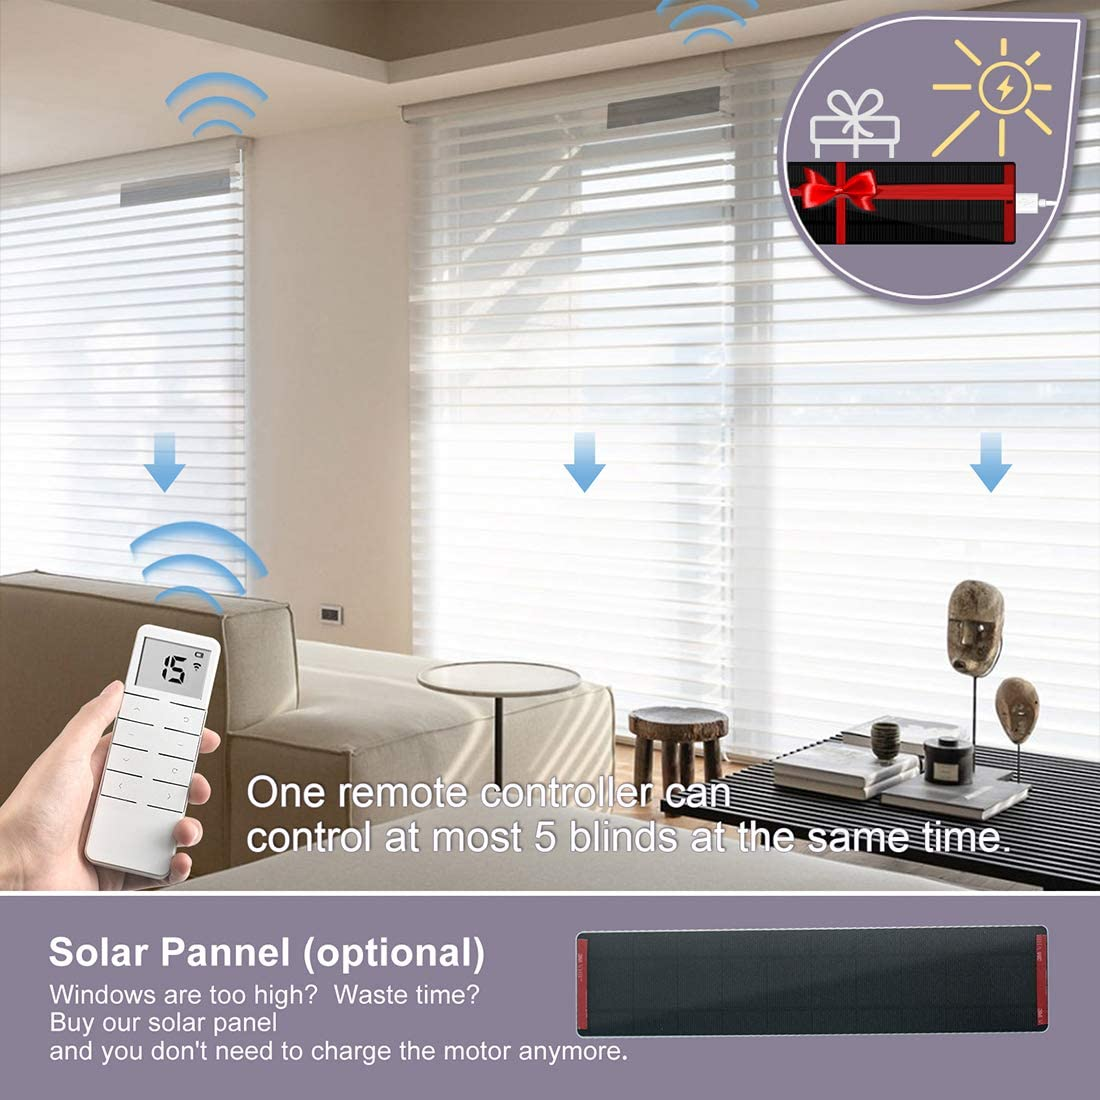 Graywind Motorized Shangrila Shades Remote Control Rechargeable Light Filtering Blinds Cordless Privacy with Valance for Smart Home and Office Customized Size Beige